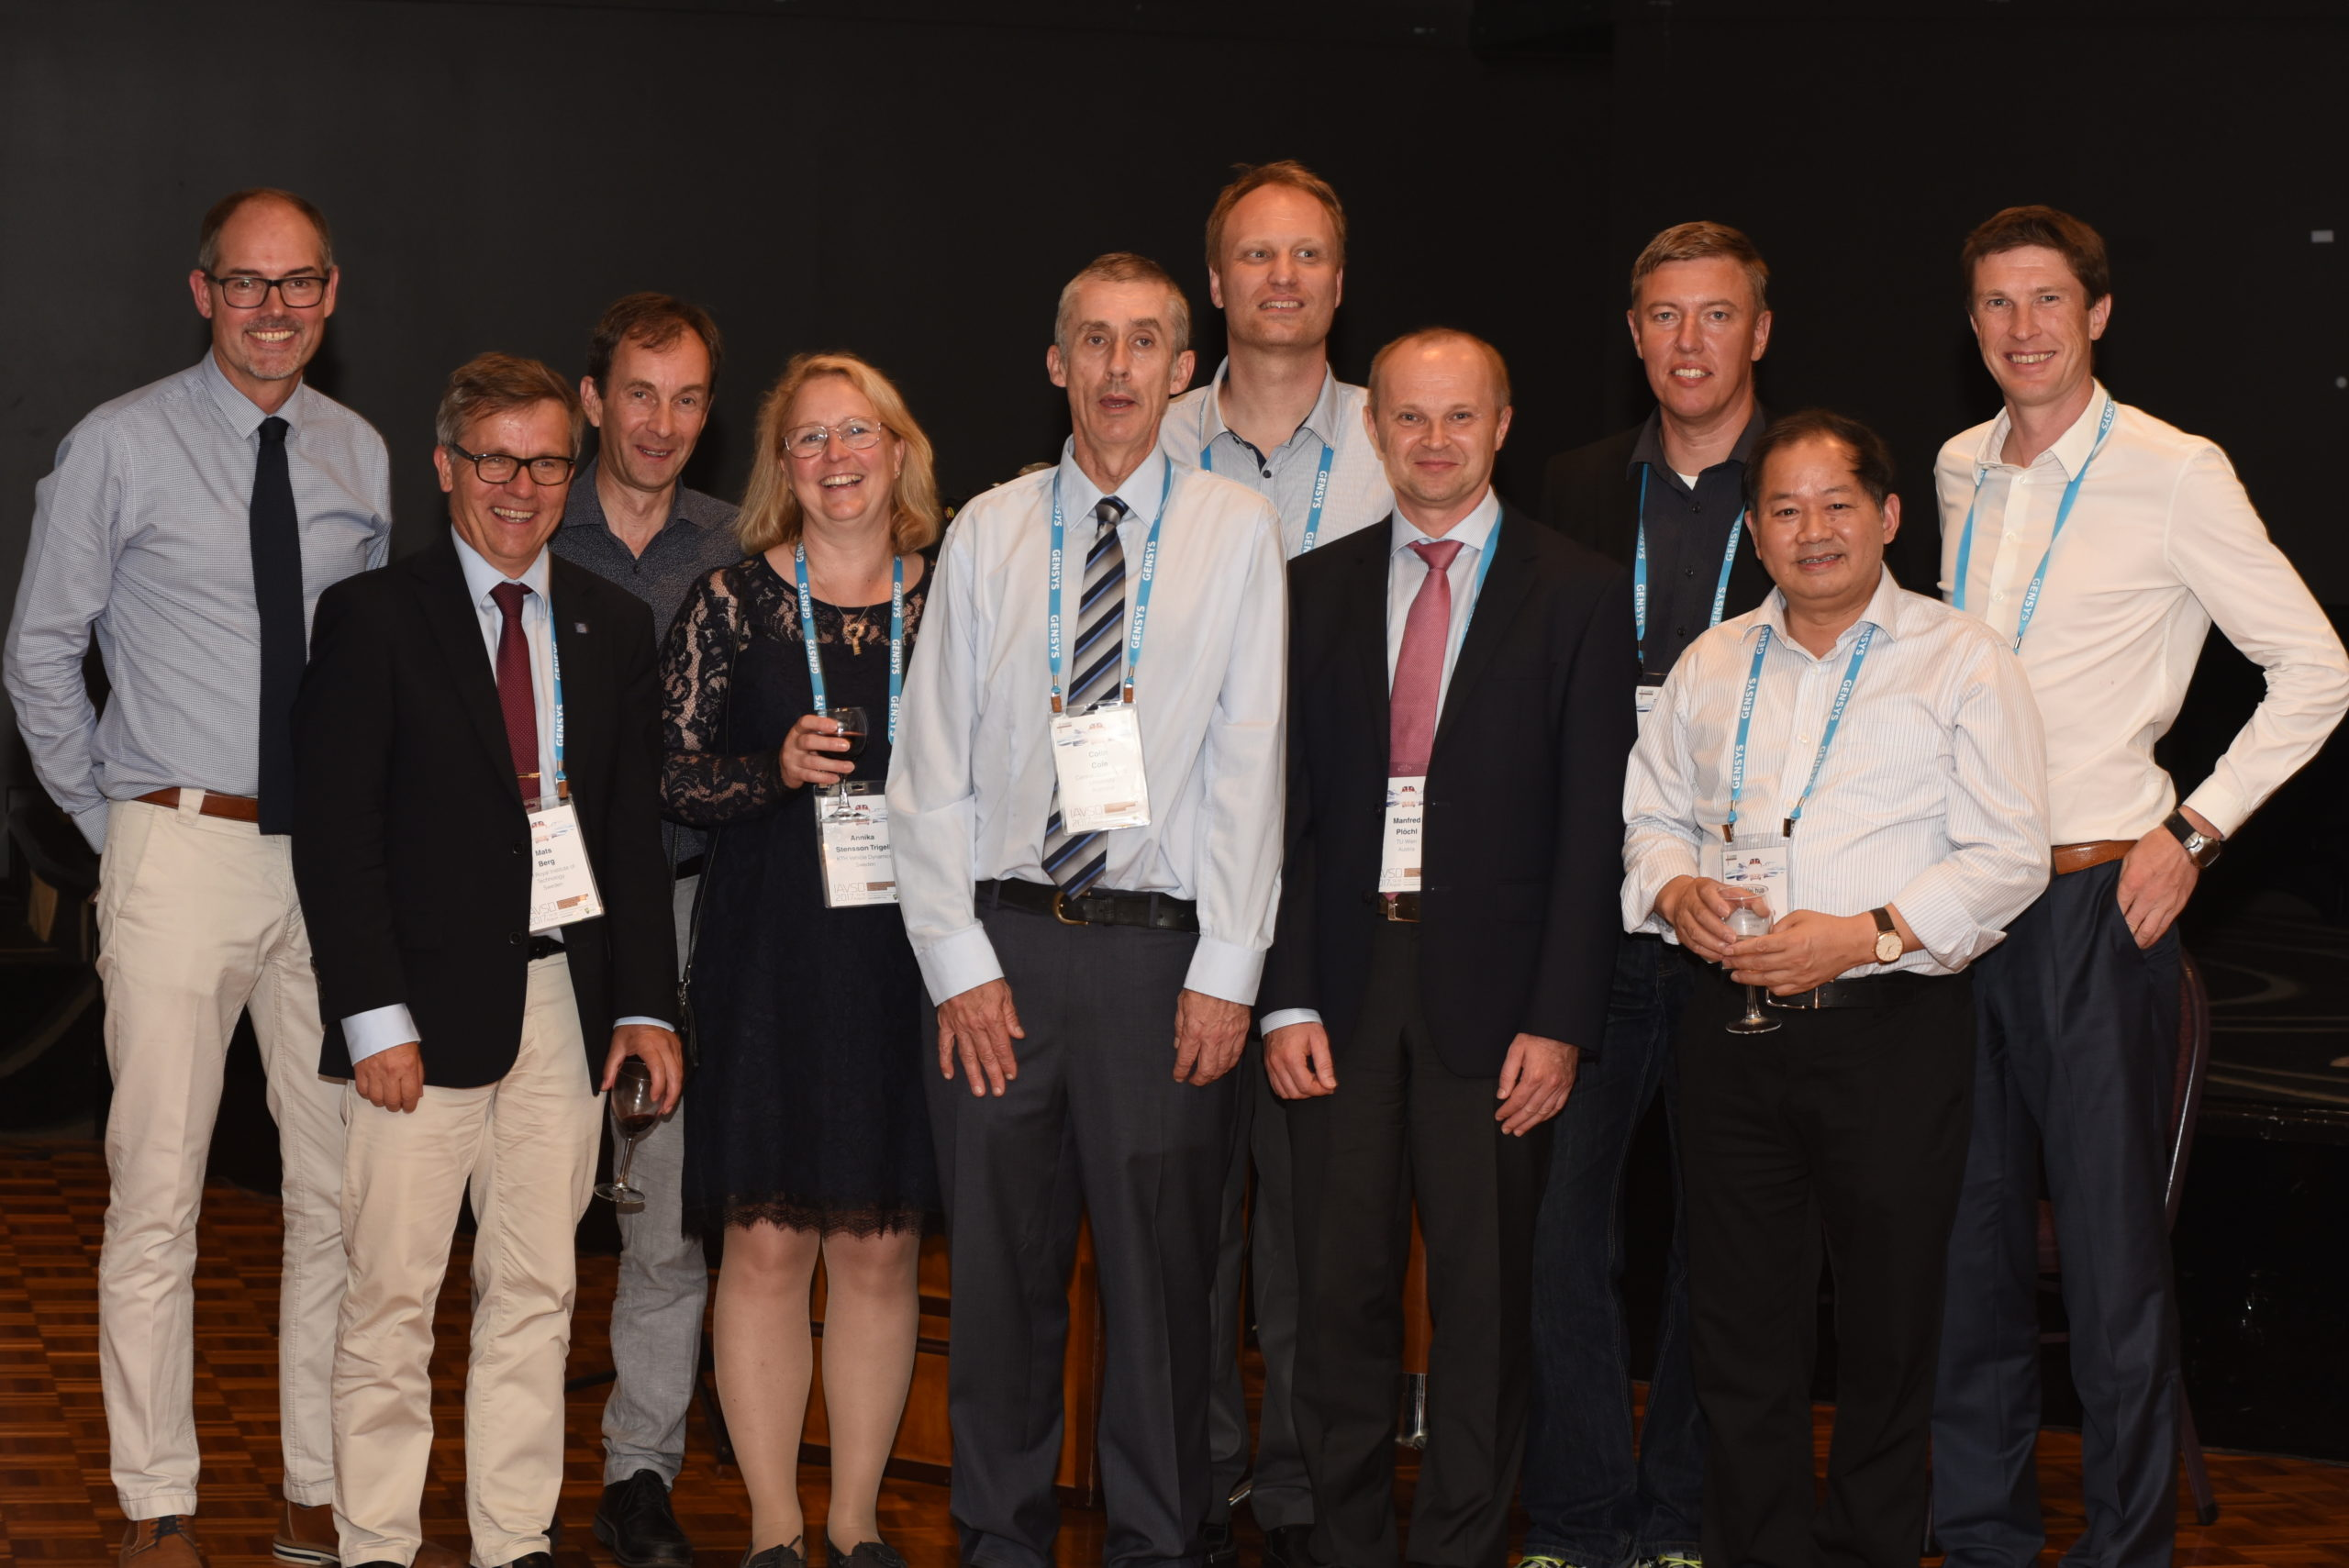 Organisers of IAVSD Symposia 2009-2019